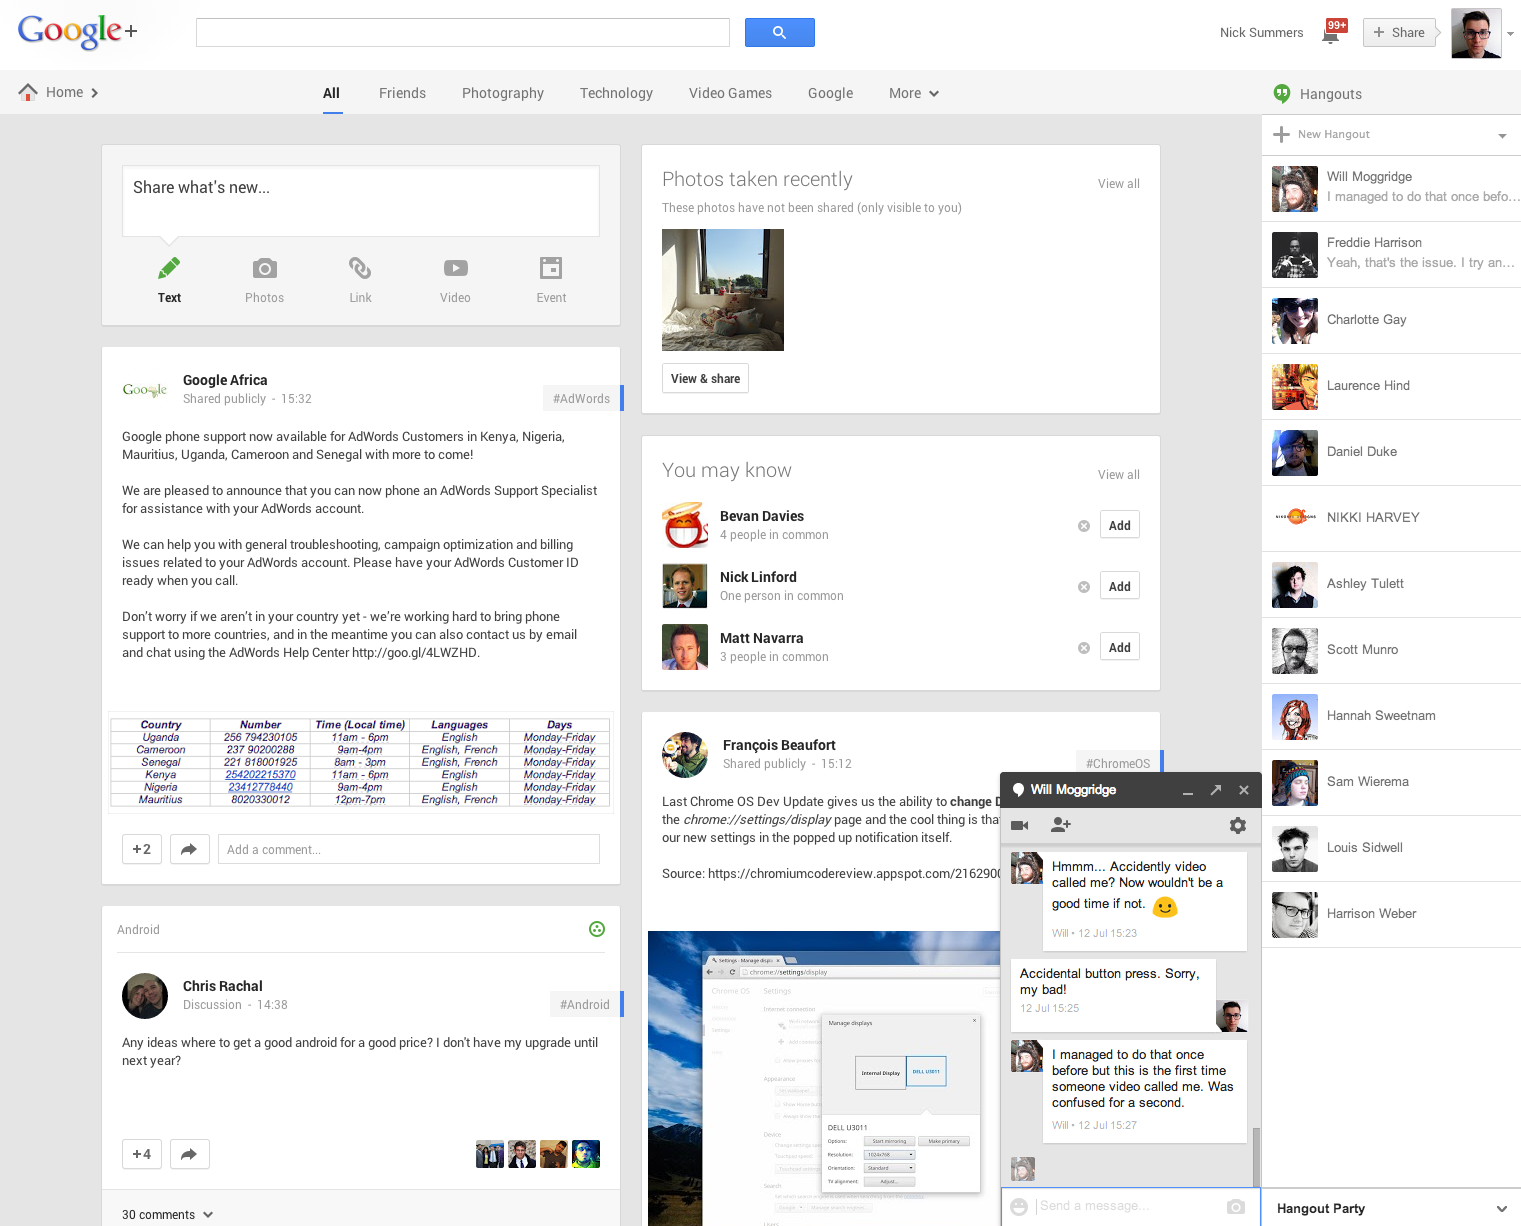 Screen Shot 2013 08 19 at 15.37.47 I'm now convinced Google+ can succeed as the social spine for all things Google